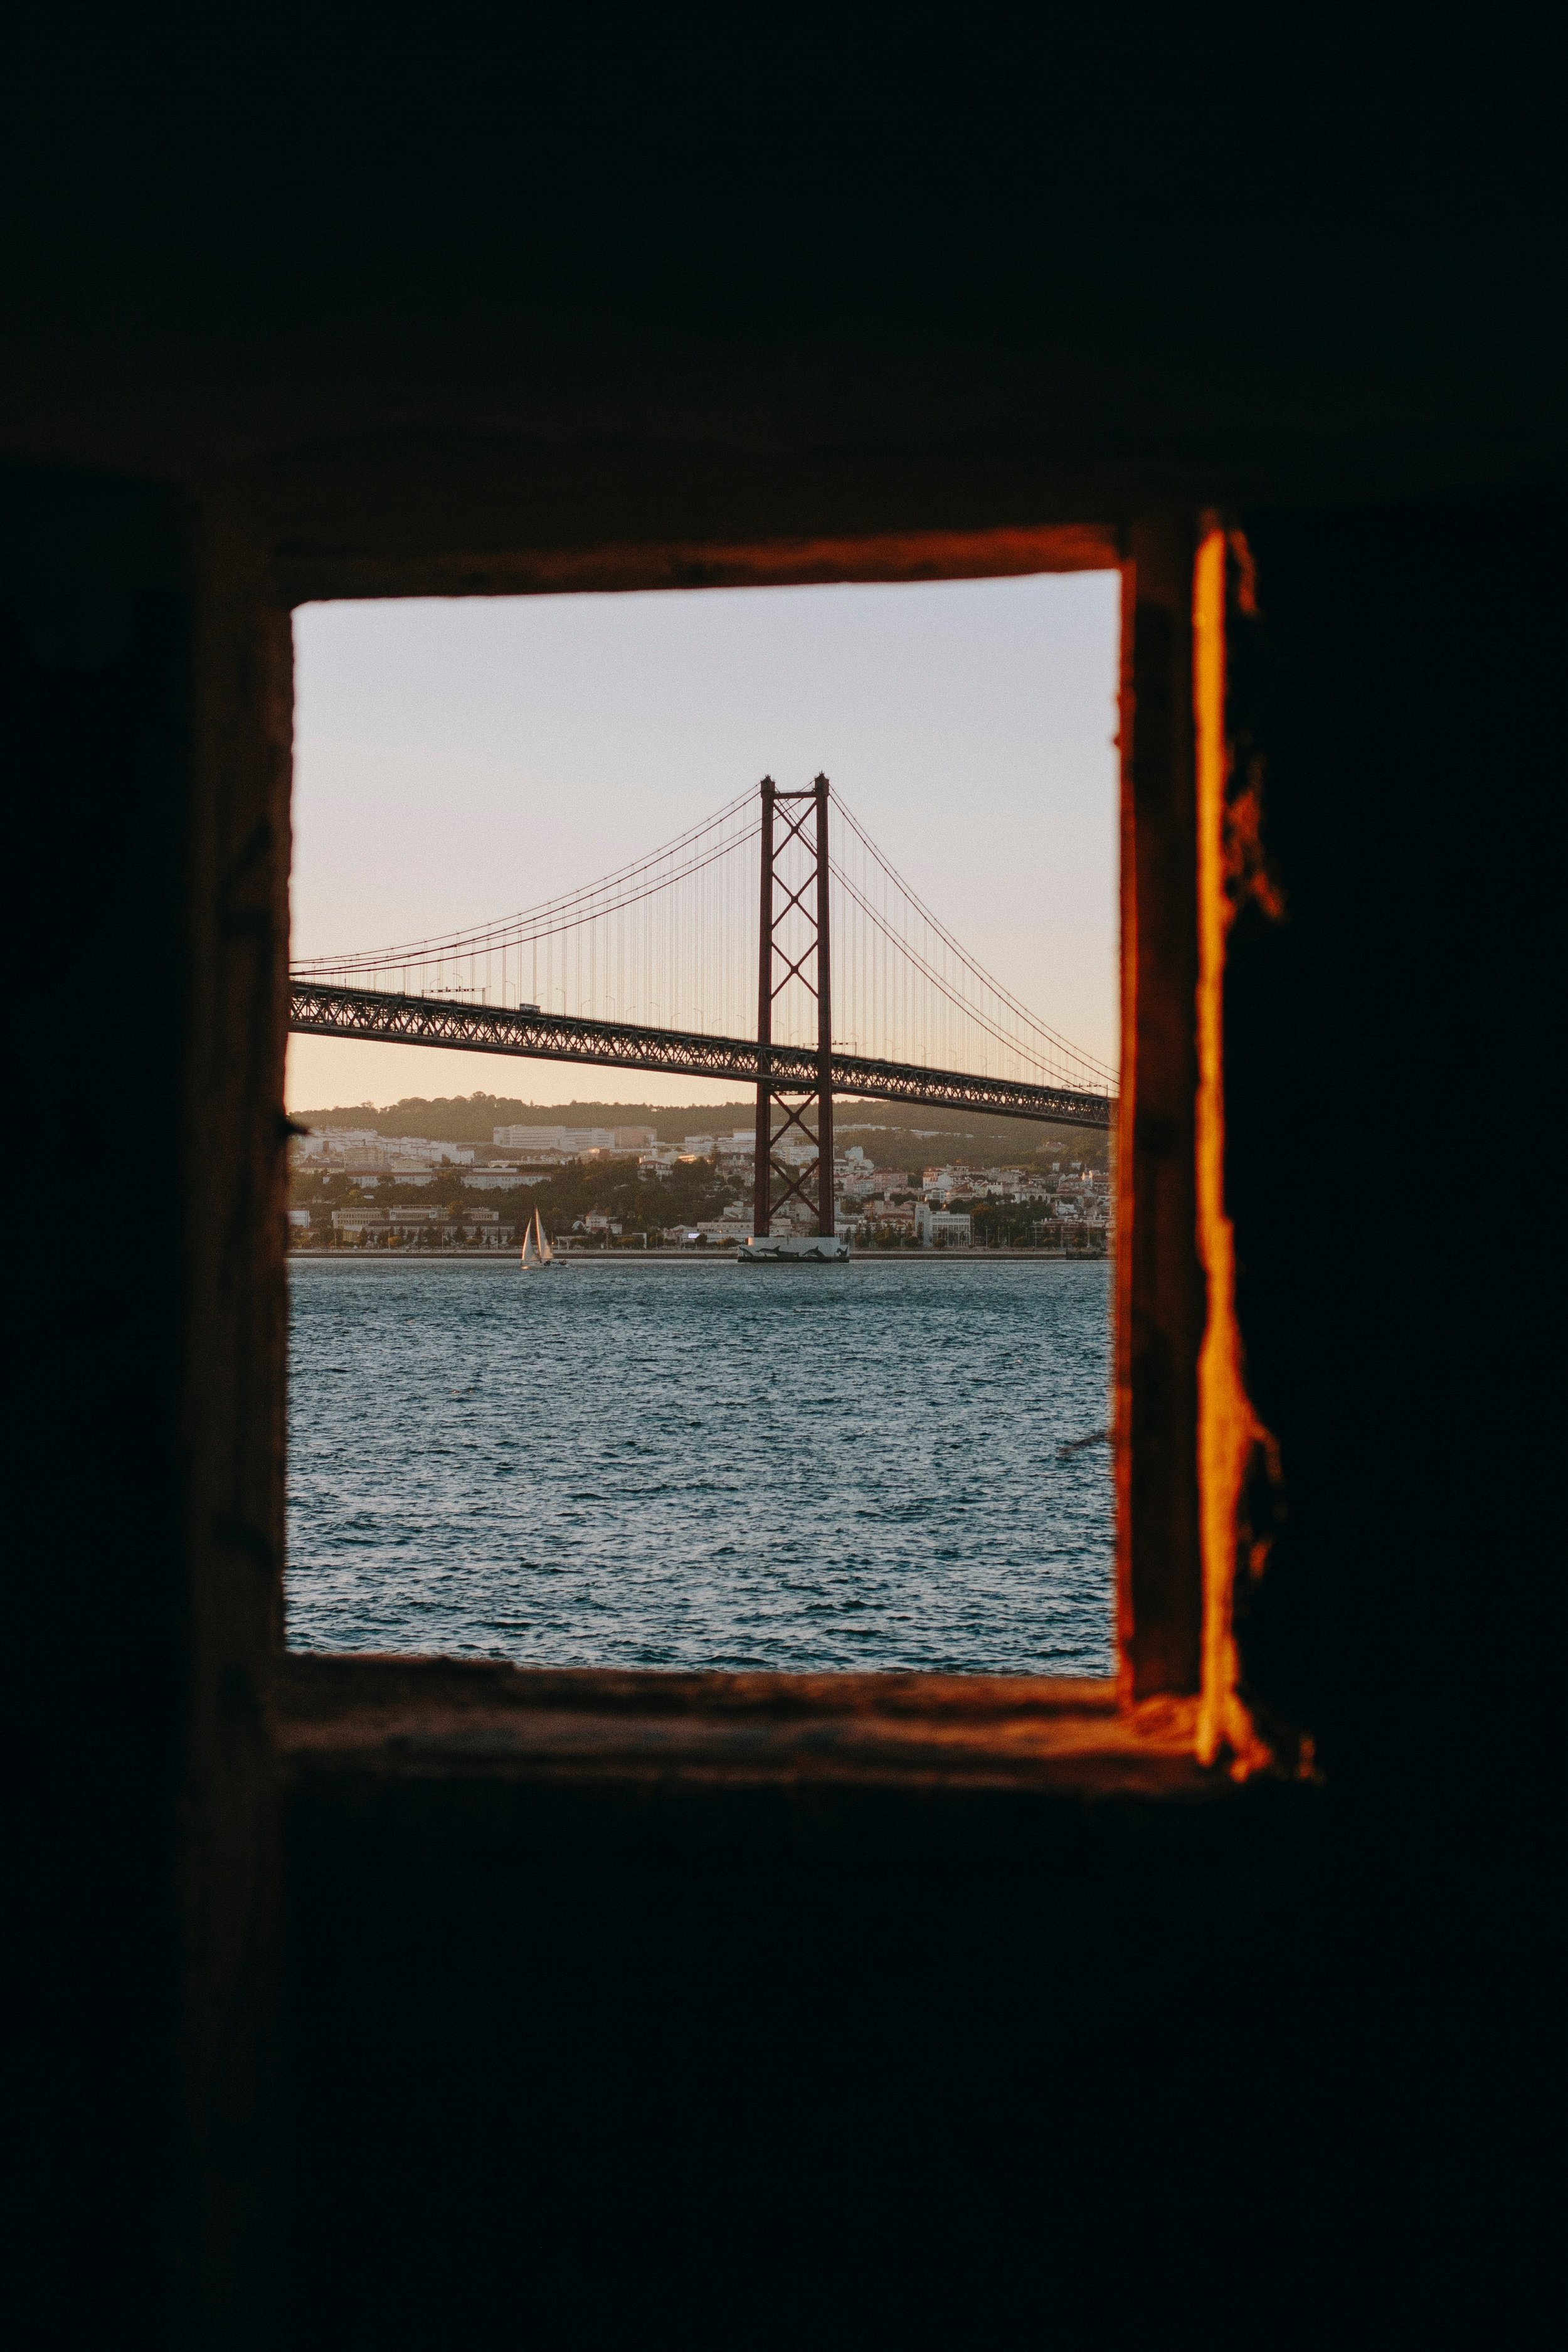 Look For Interesting Ways To Frame Your Subject To Improve Your Pictures